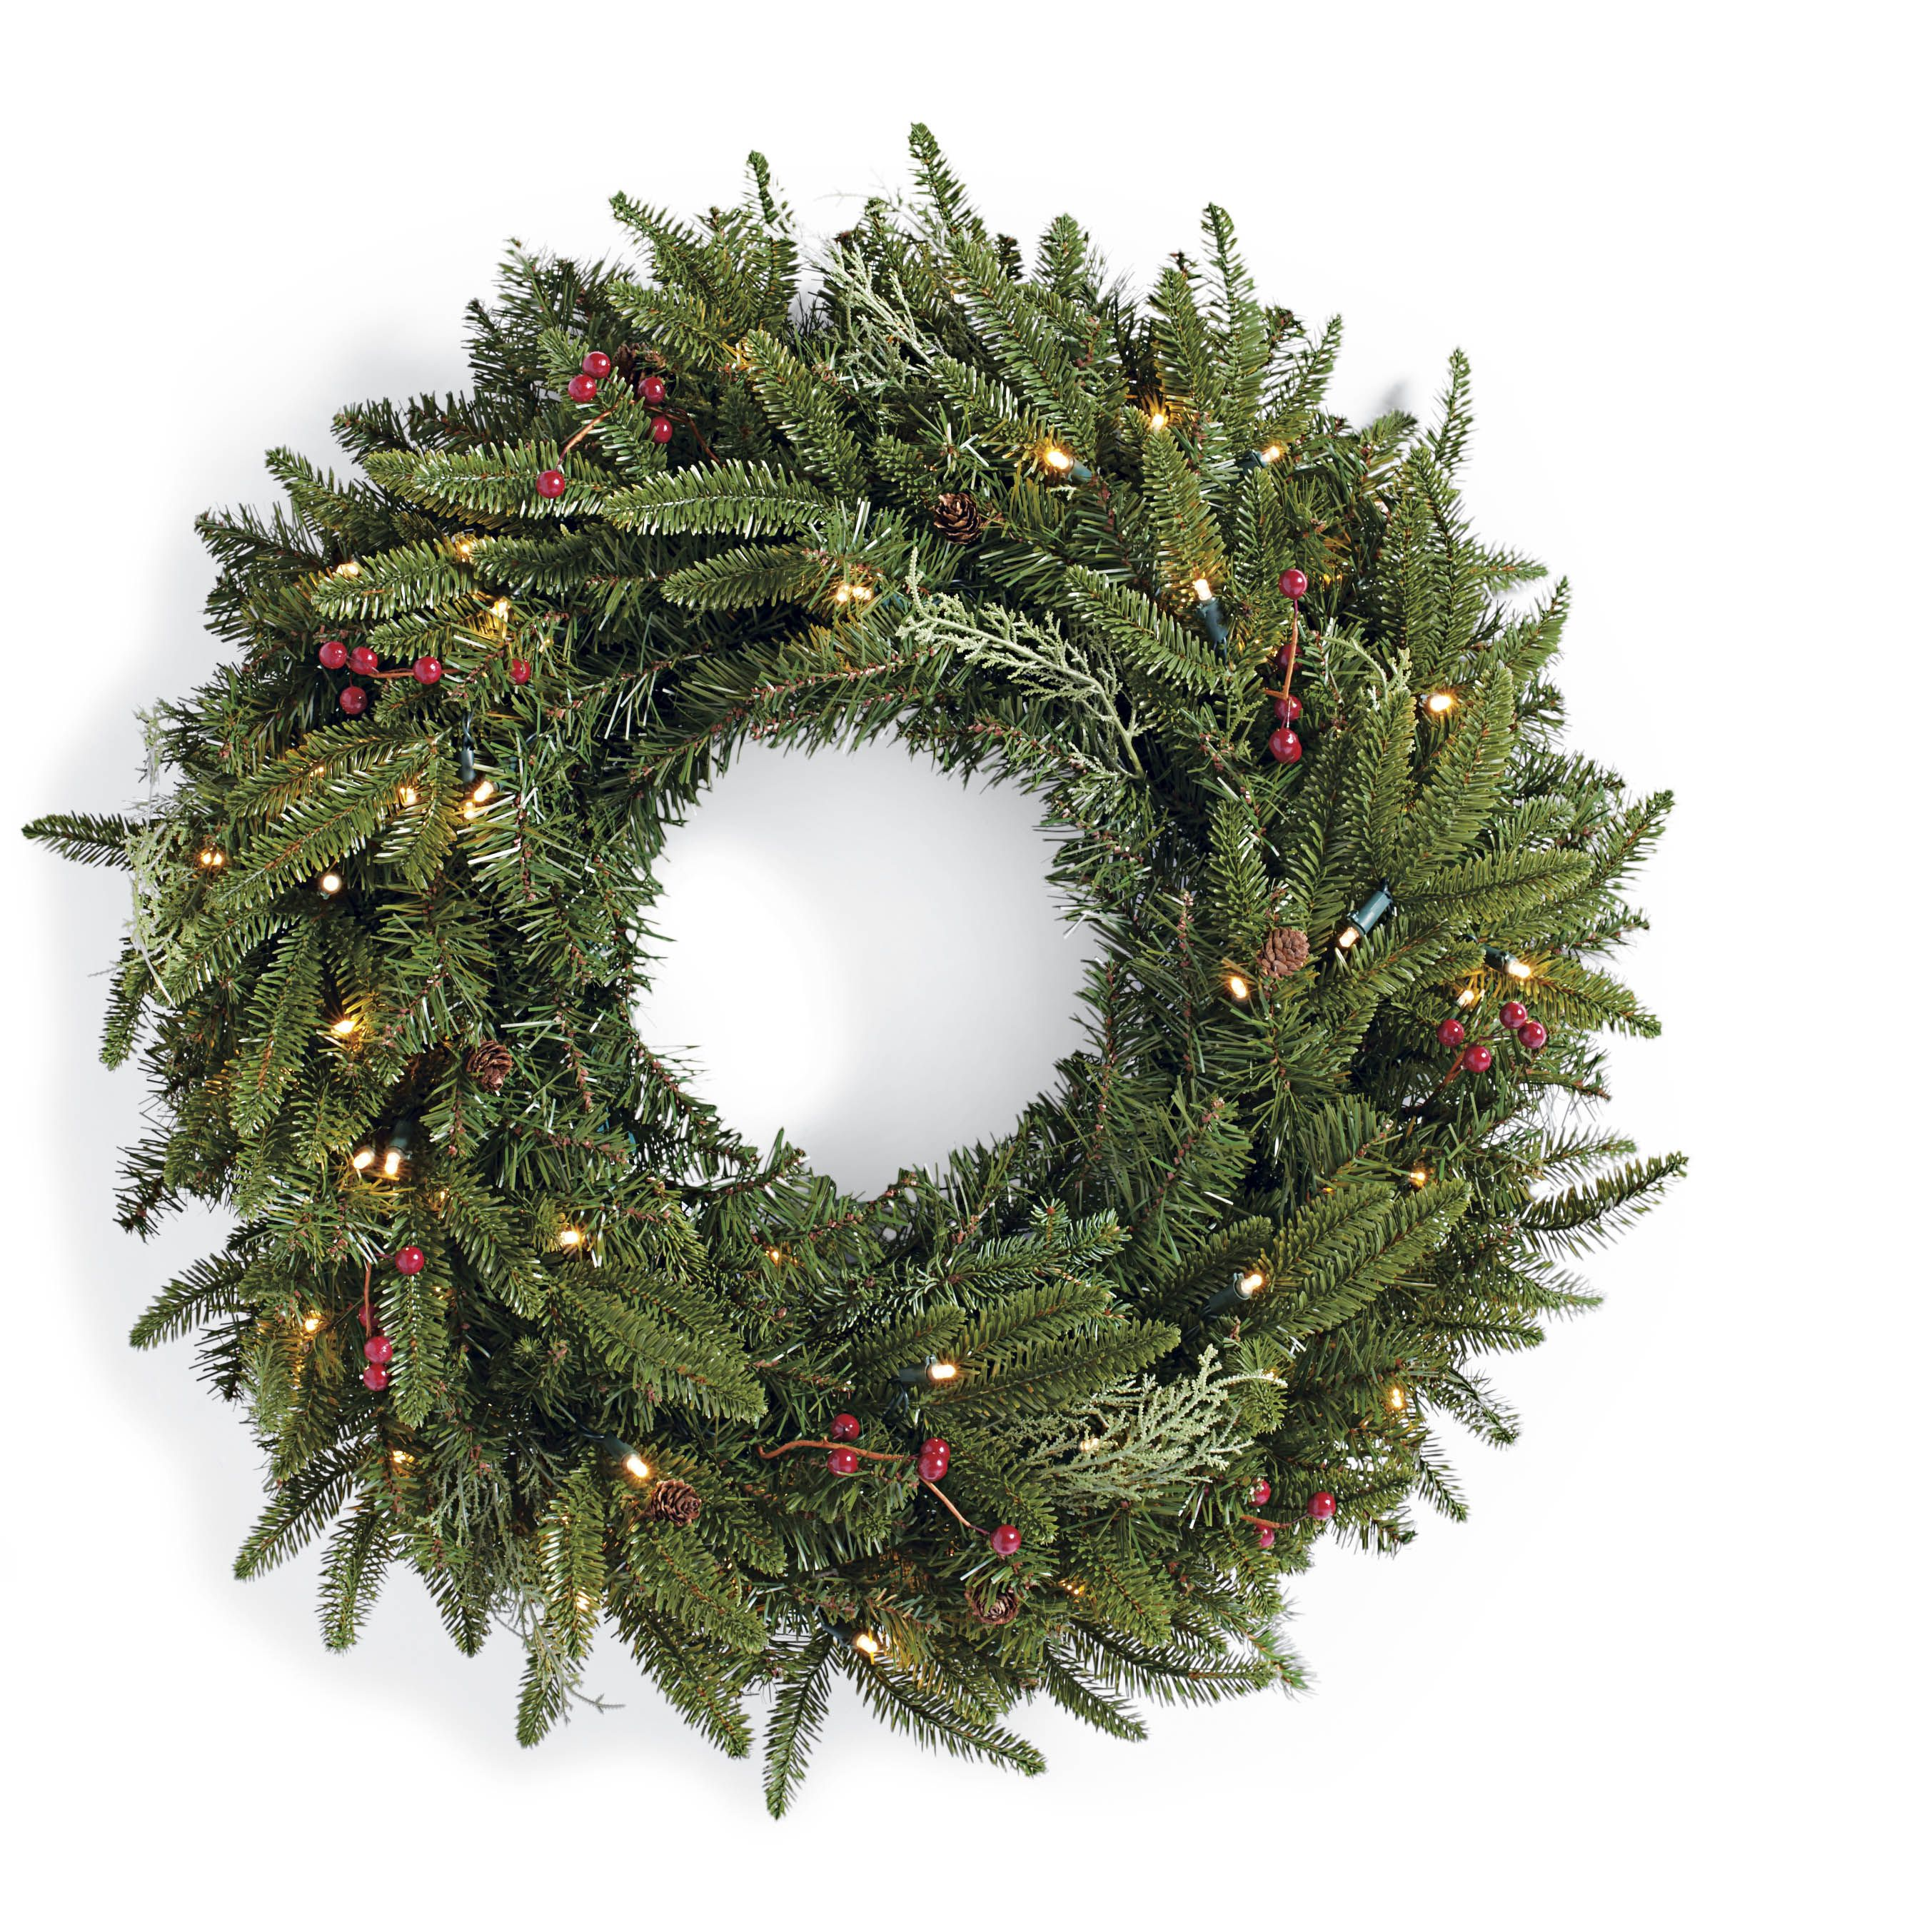 35 Gorgeous Christmas Wreaths For A Festive Front Door